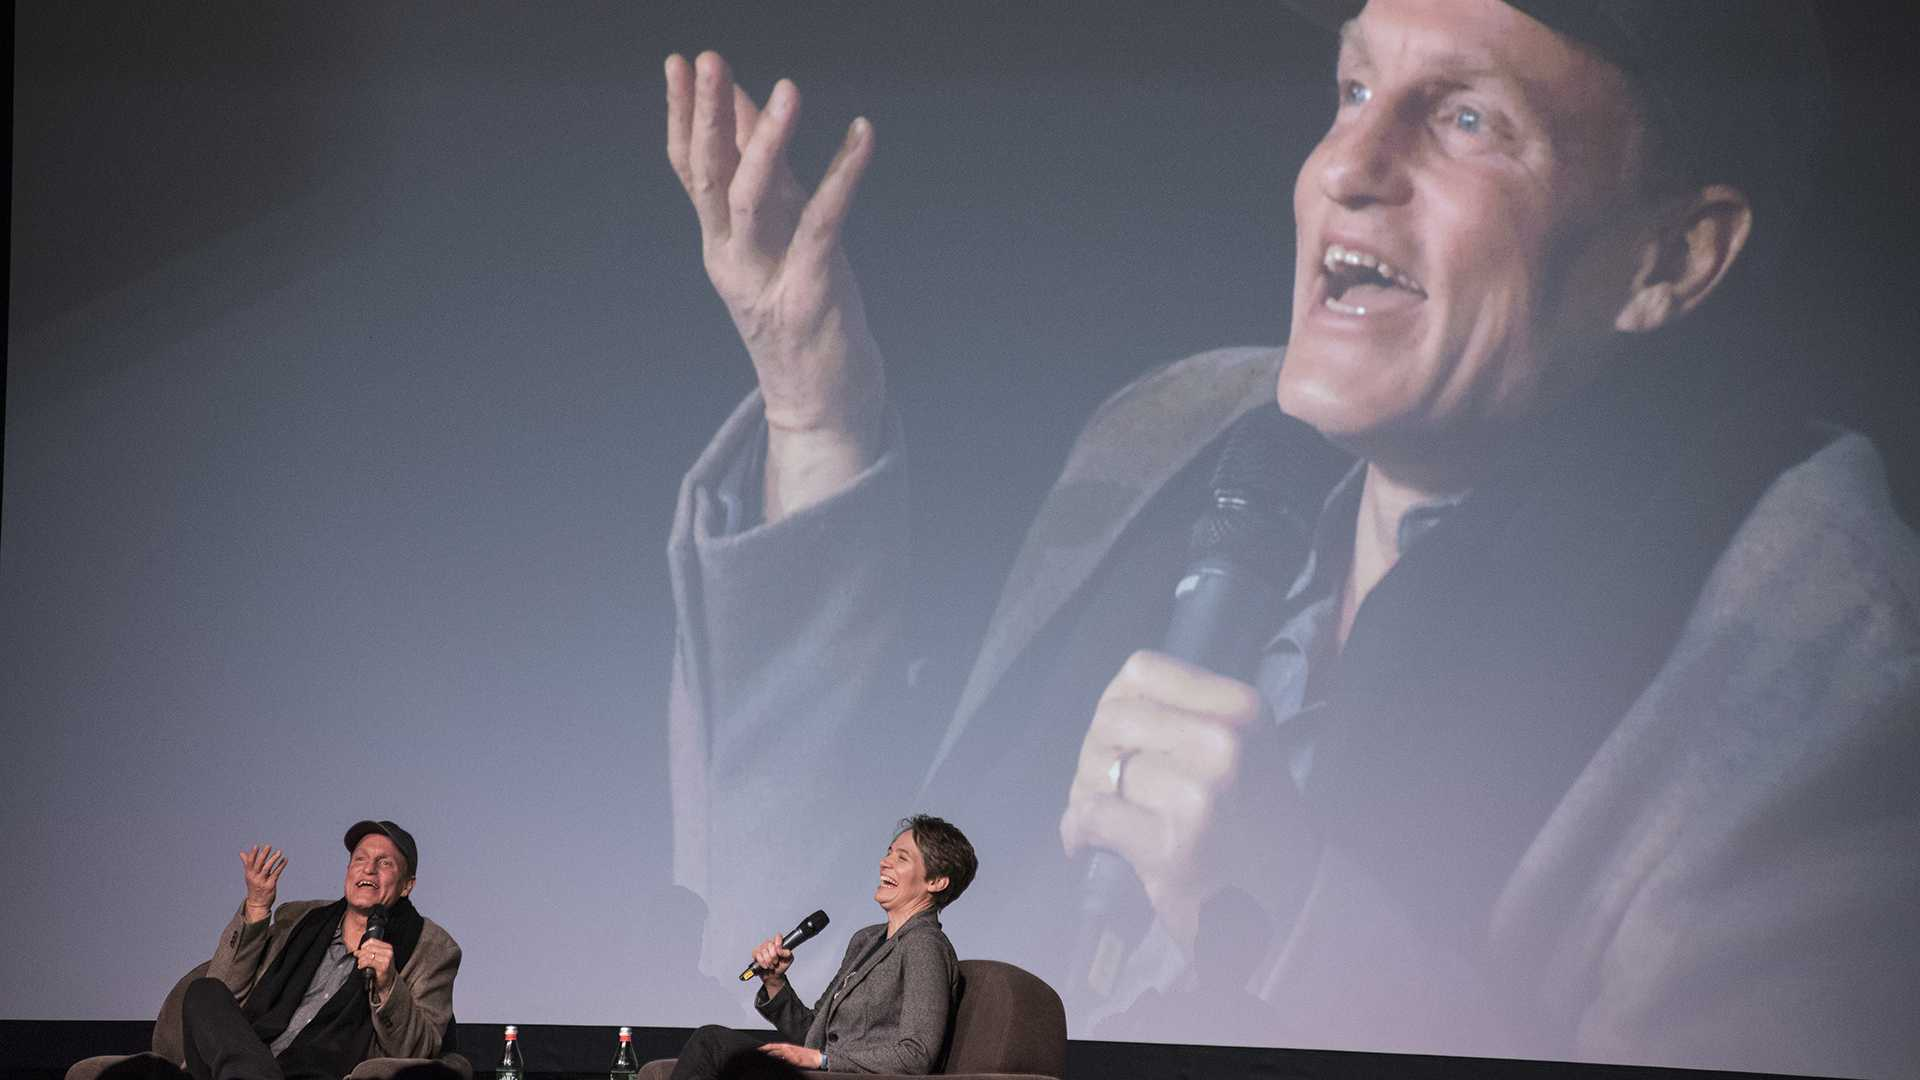 Woody Harrelson visits the IMU on Thursday, Jan. 25 to speak about his new movie